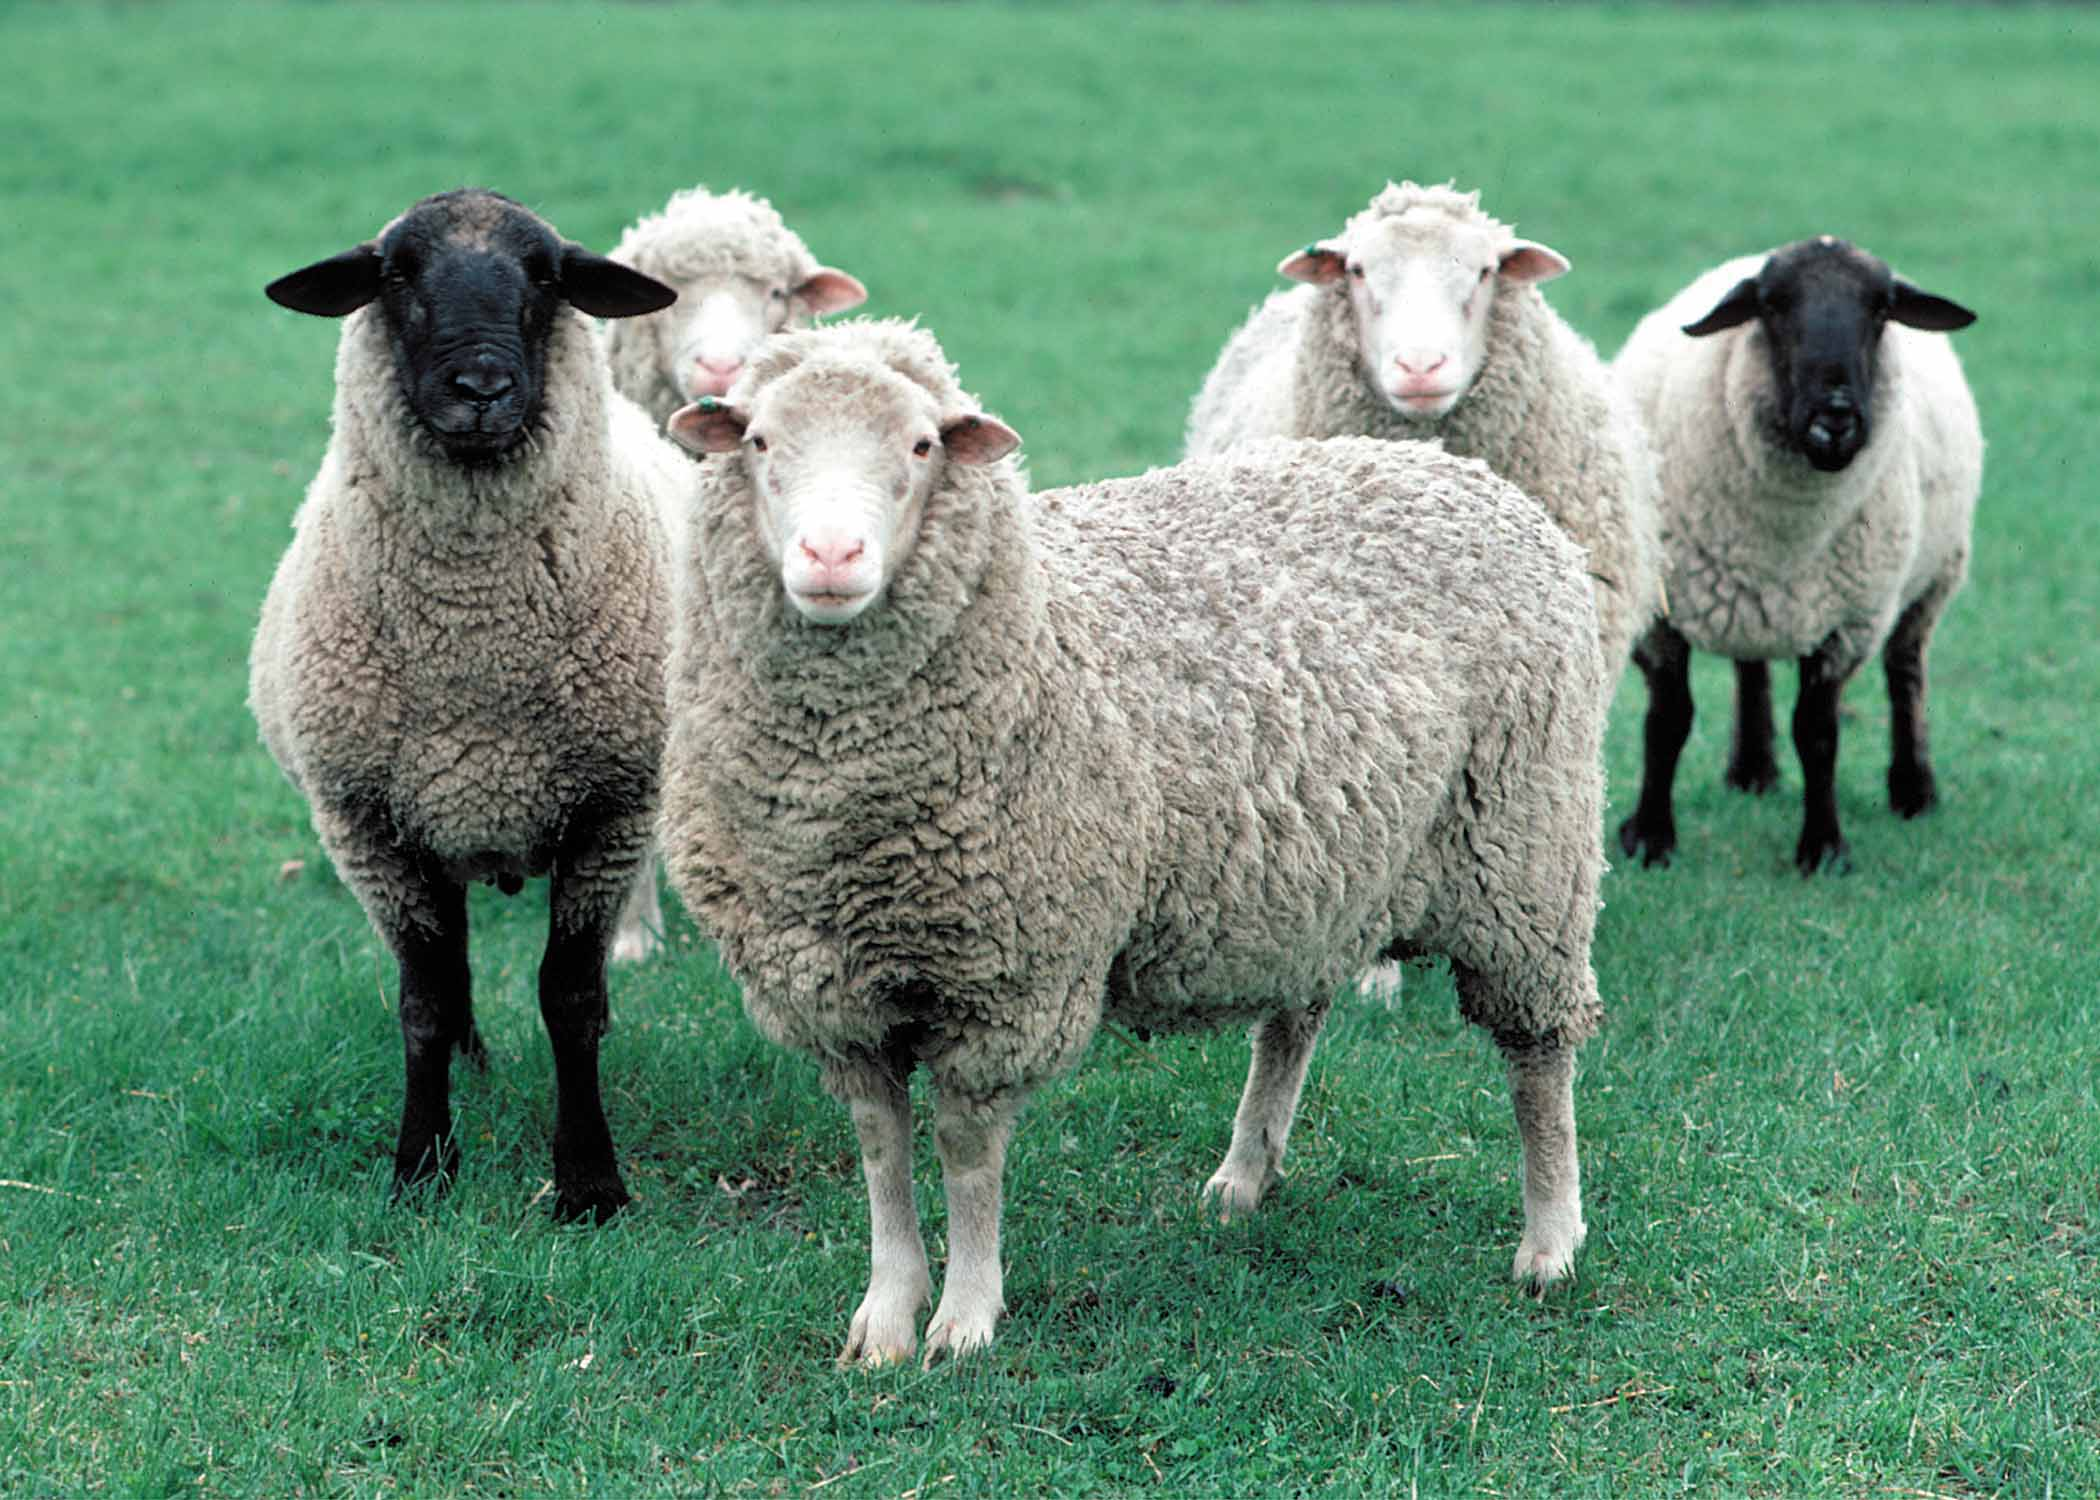 Sheep and Goat: Health and Disease